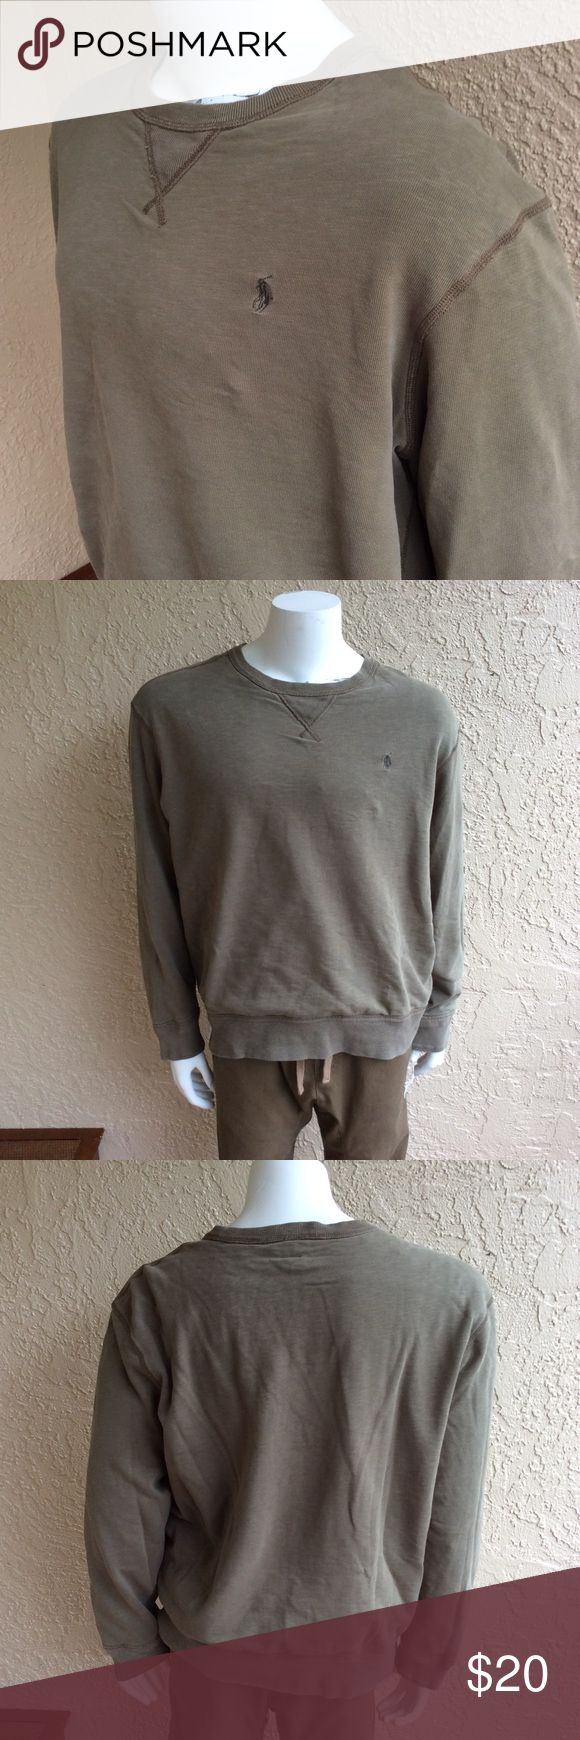 Yeezy style polo crew neck Super dope Ralph Lauren style sweater! It looks and would match a pair of yeezys perfectly has that baggy earth tone feel! High quality sweater Polo by Ralph Lauren Sweaters Crewneck